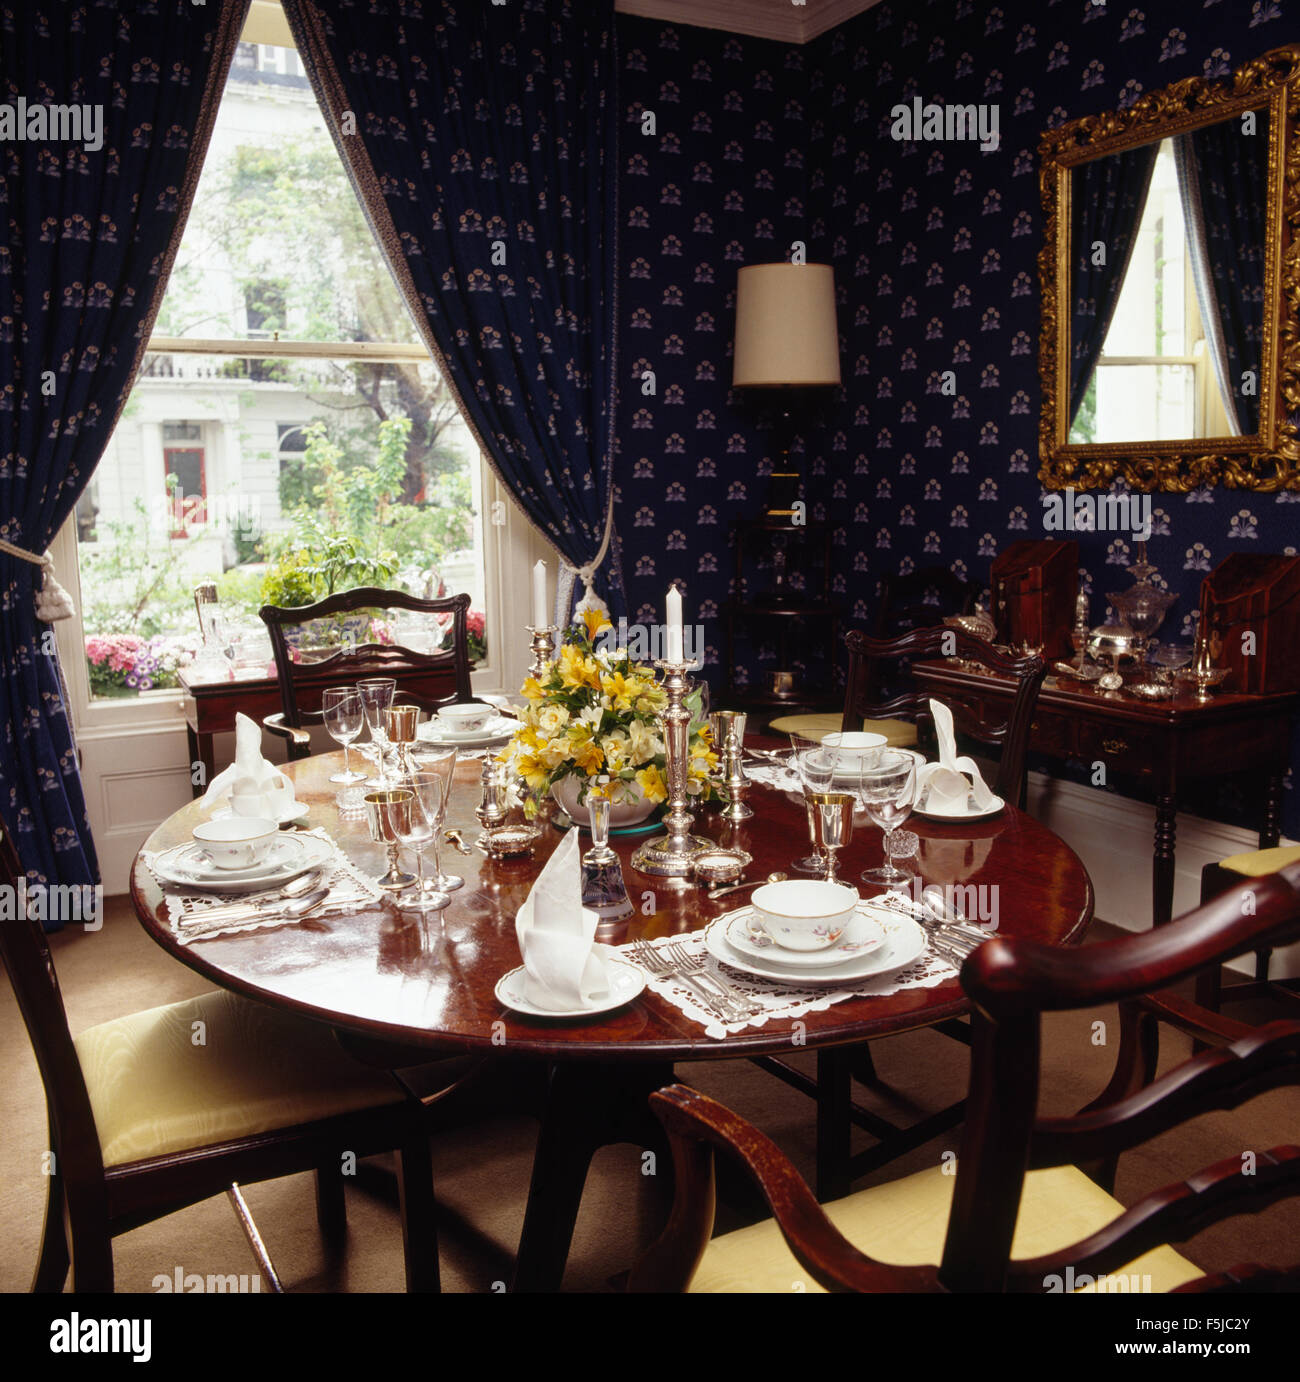 Dark blue wallpaper and matching curtains in eighties dining room with table set for lunch - Stock Image